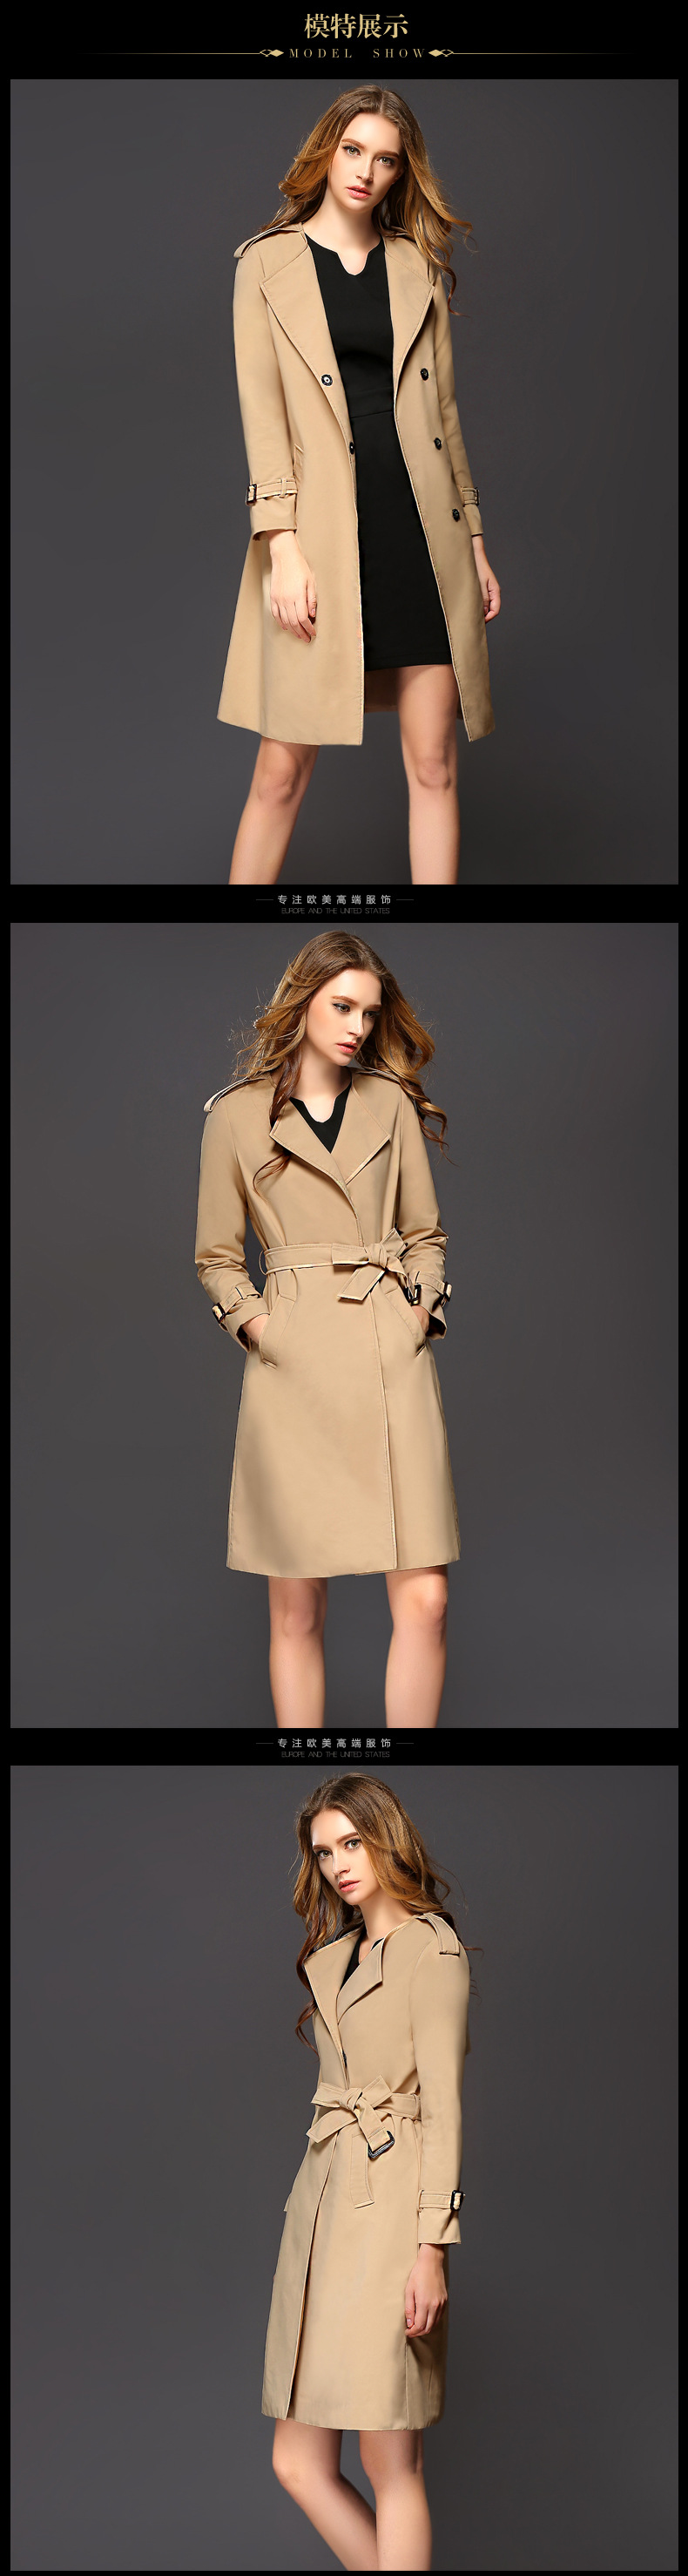 2016 High Quality Fall Winter Fashion Trench Coat For Women Casual Ladies Ol Overcoat Slim Long Windbreaker With Belt Clothing